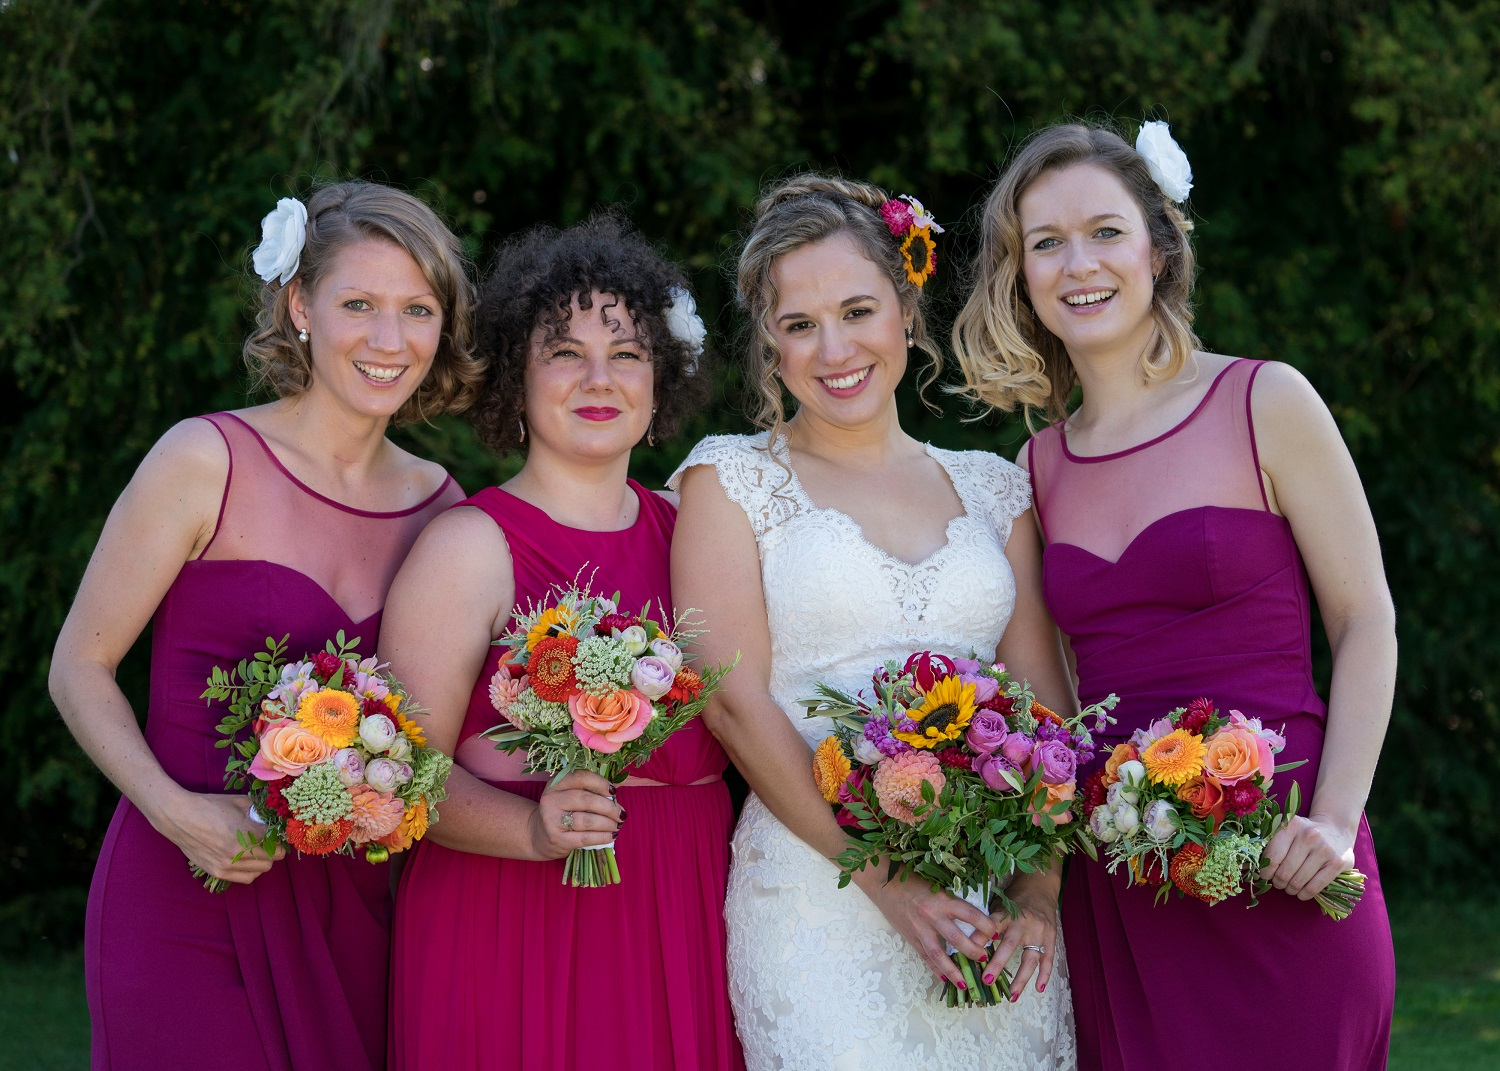 wakehurst place wedding, colourful wedding bouquets with cerise pink bridesmaids dresses